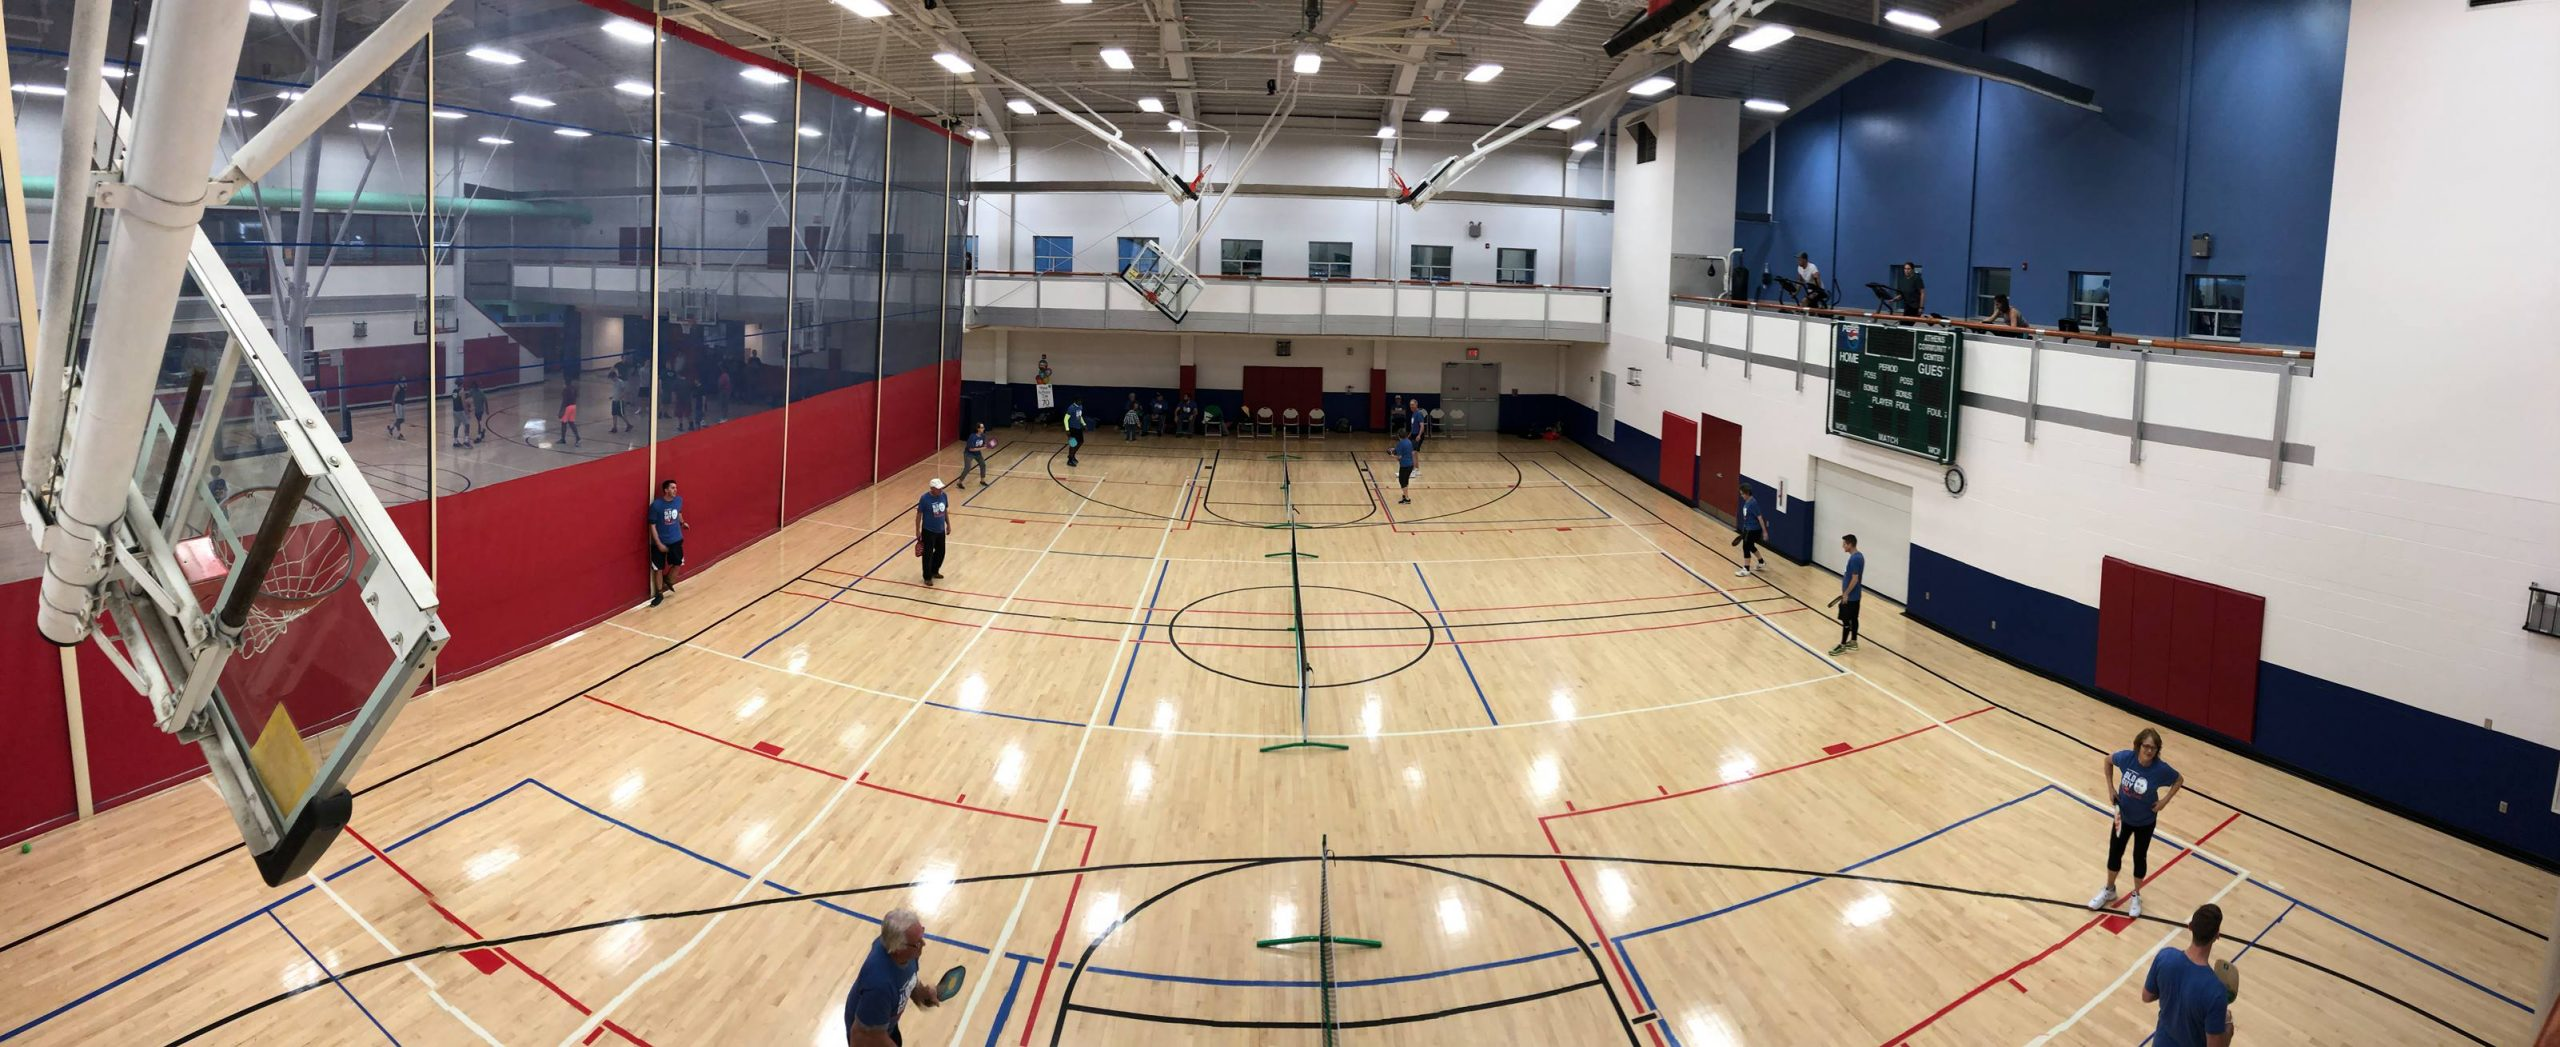 A court at the Athens Community Center is set up for Pickleball